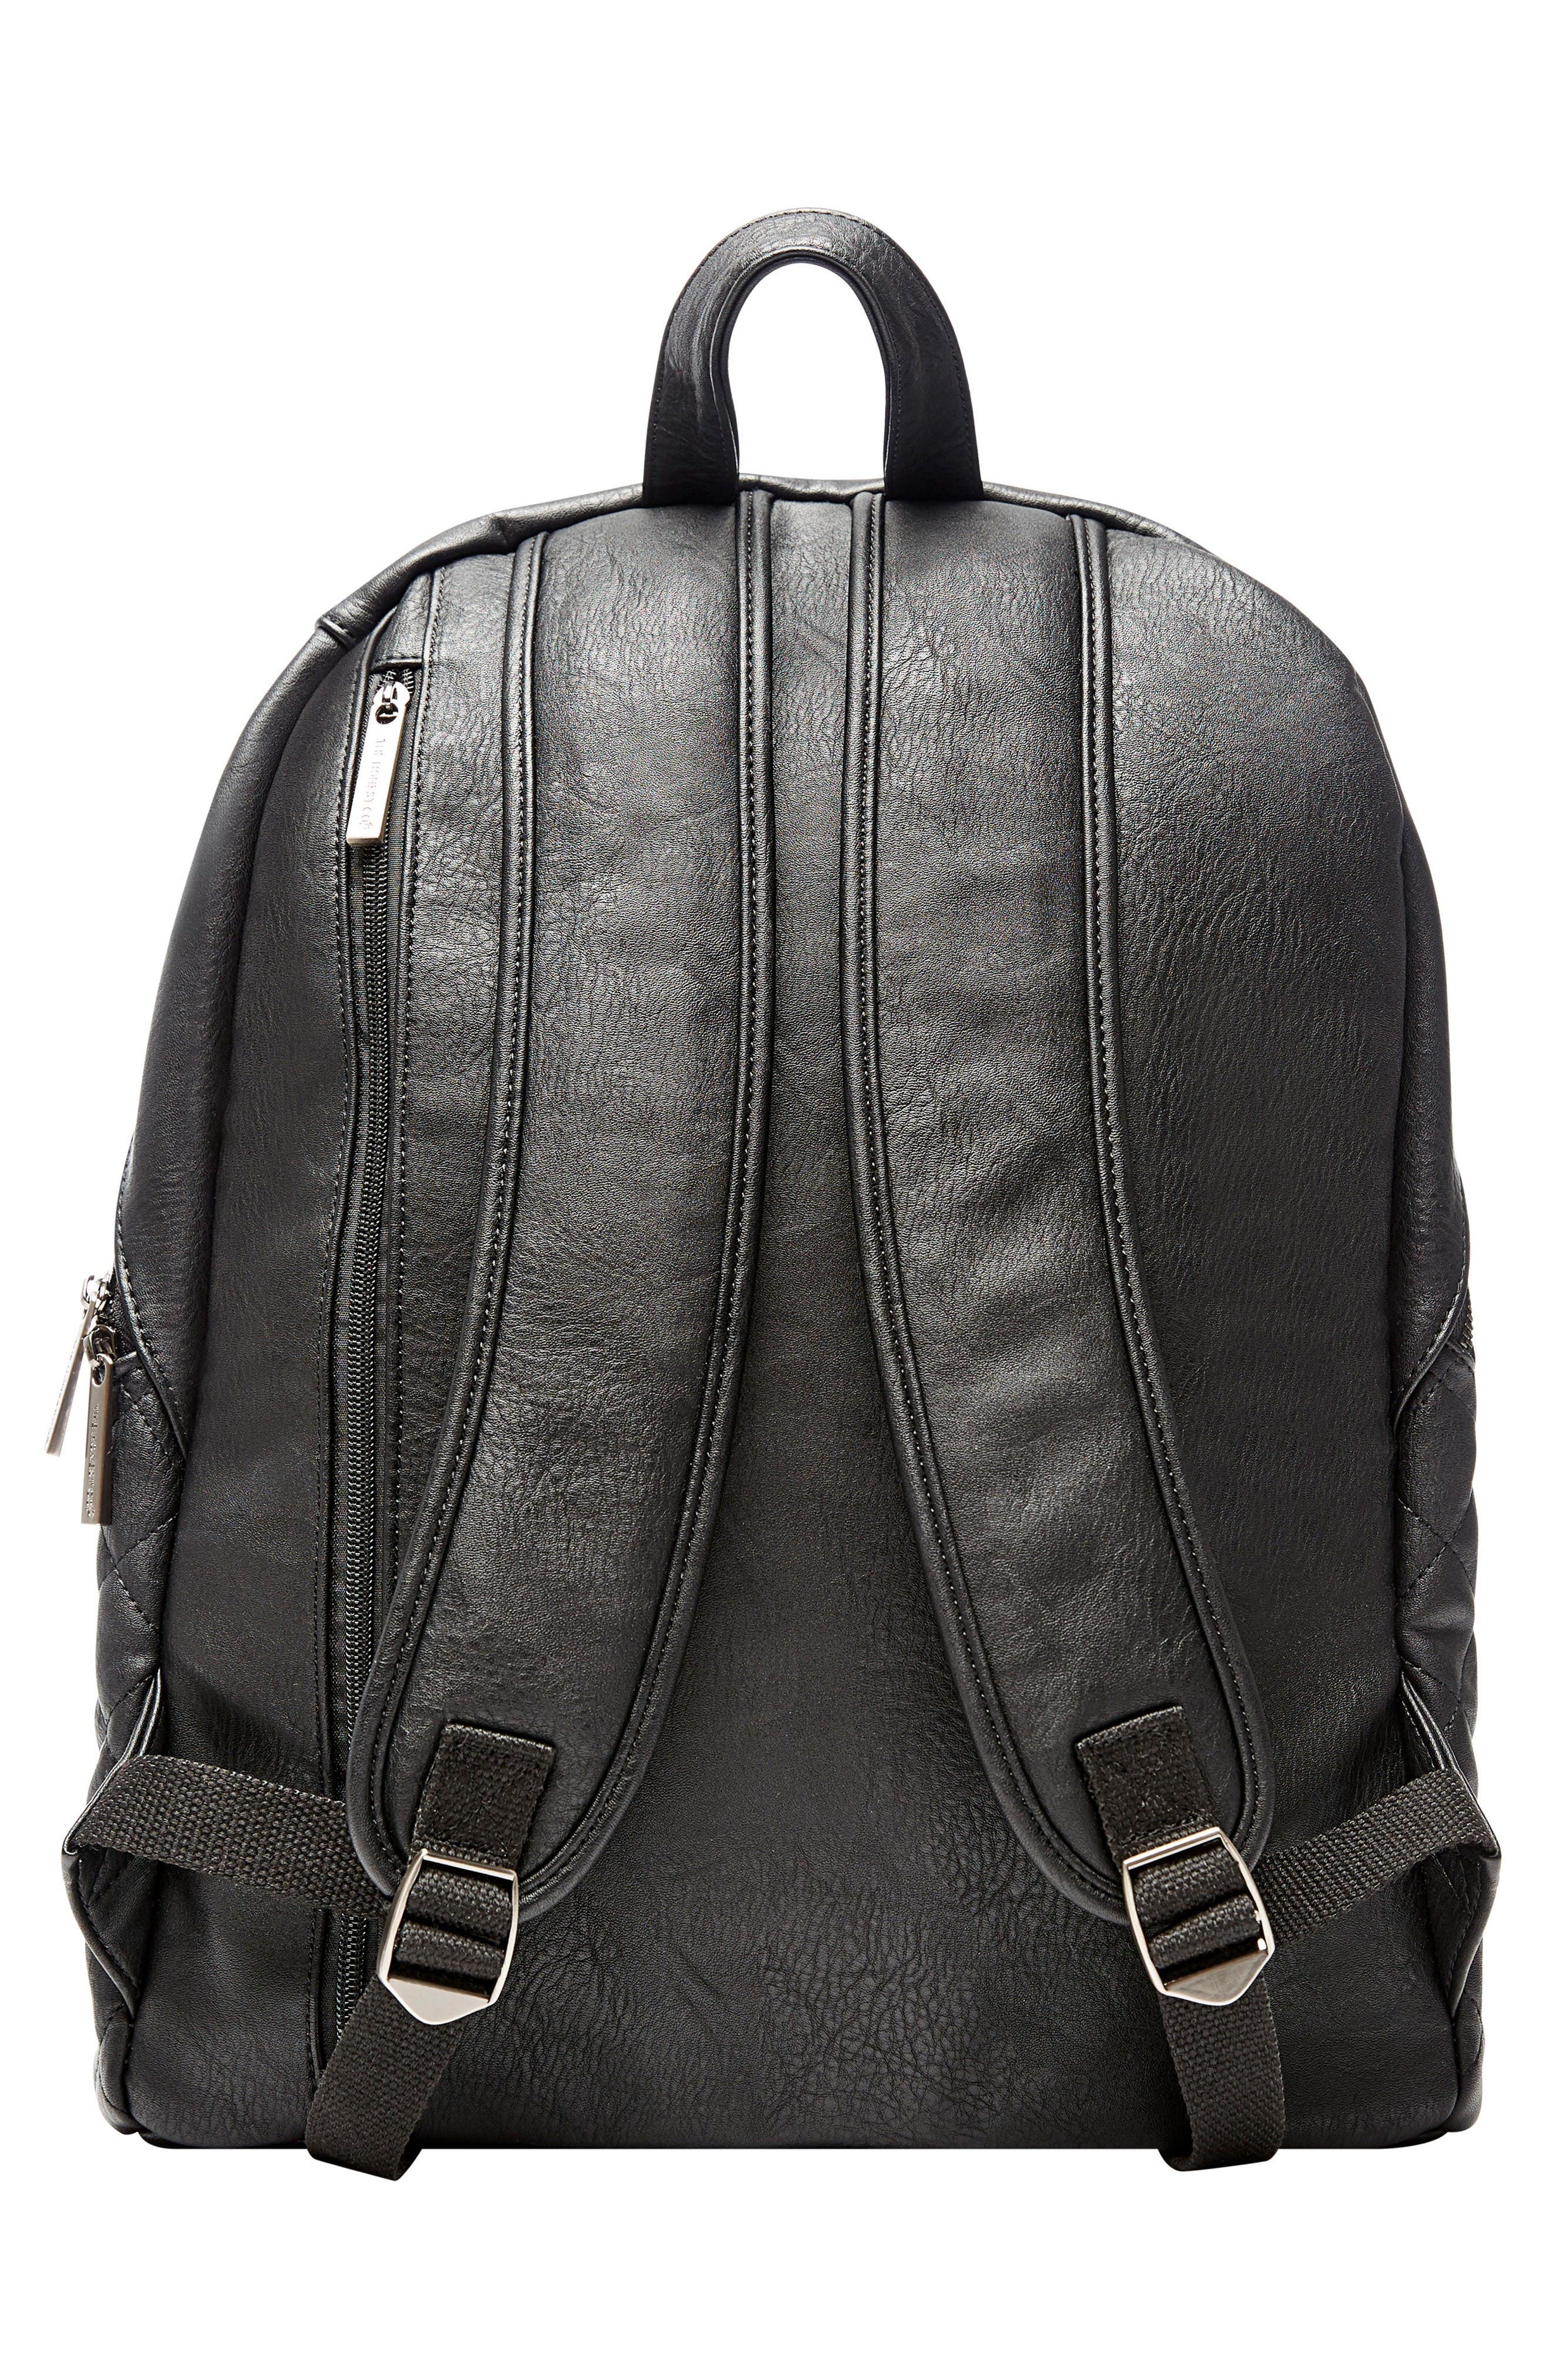 Alternate Image 2  - The Honest Company City Quilted Faux Leather Diaper Backpack